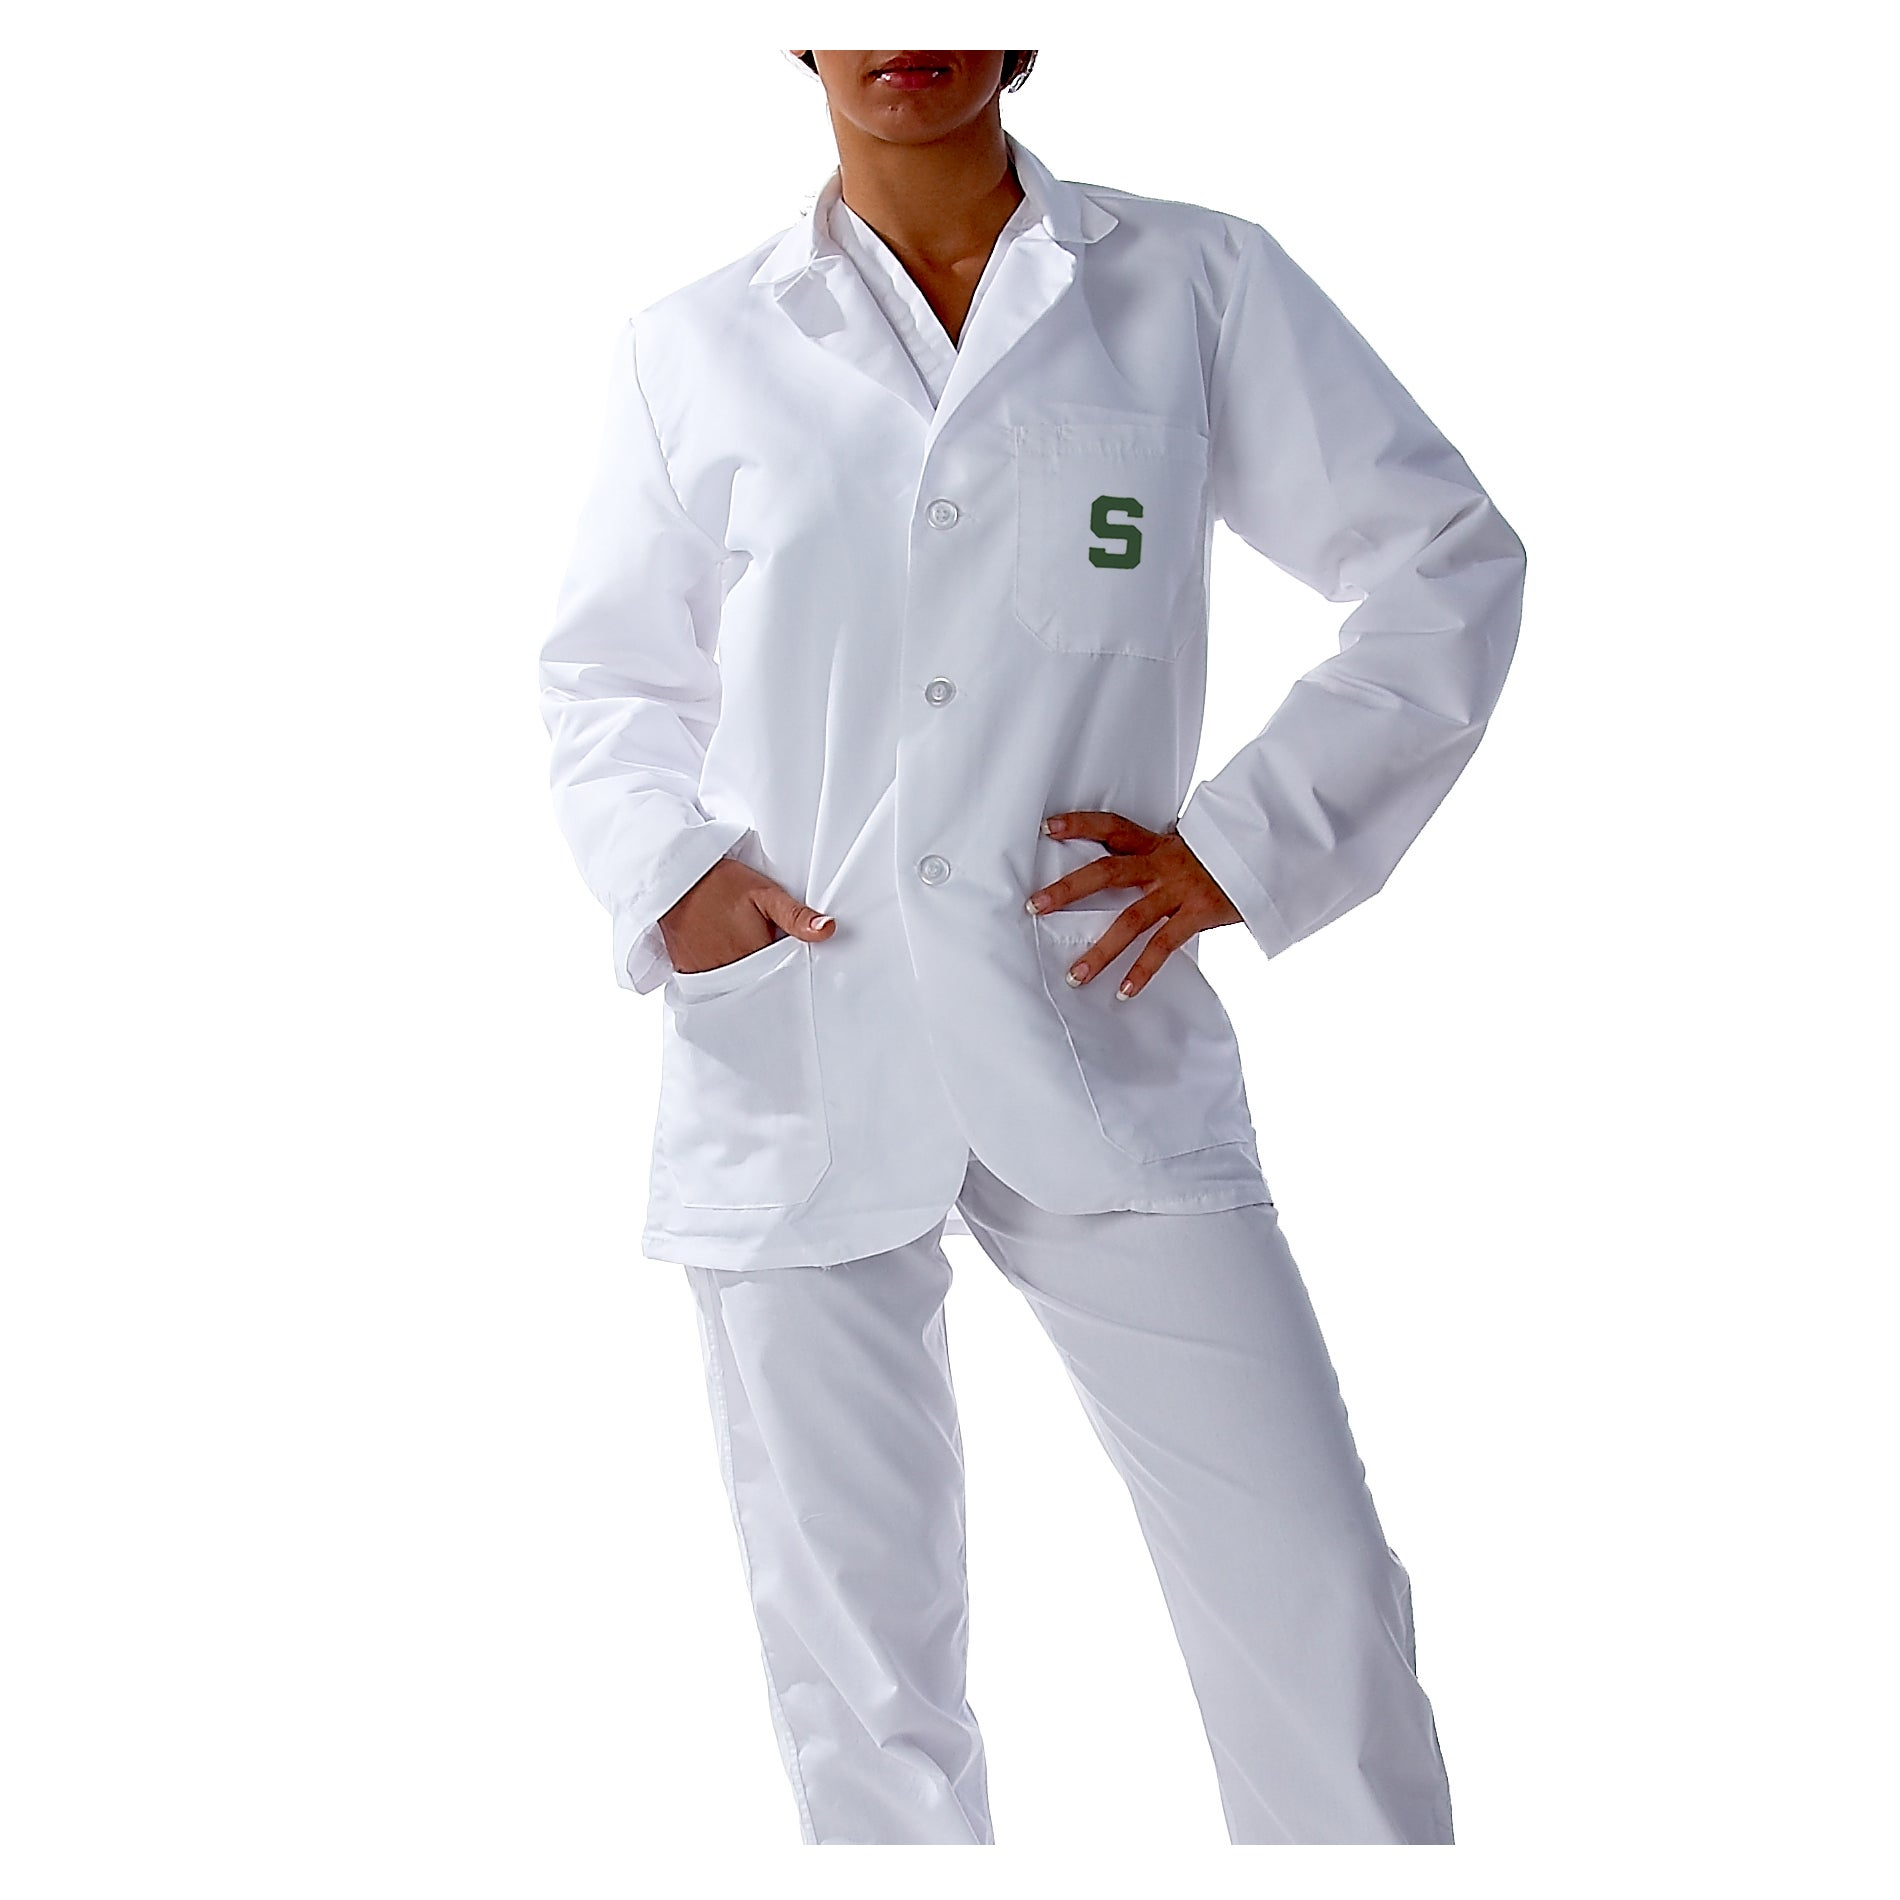 Gelscrubs Machine-Washable Unisex NCAA Michigan Wolverines Short Labcoat